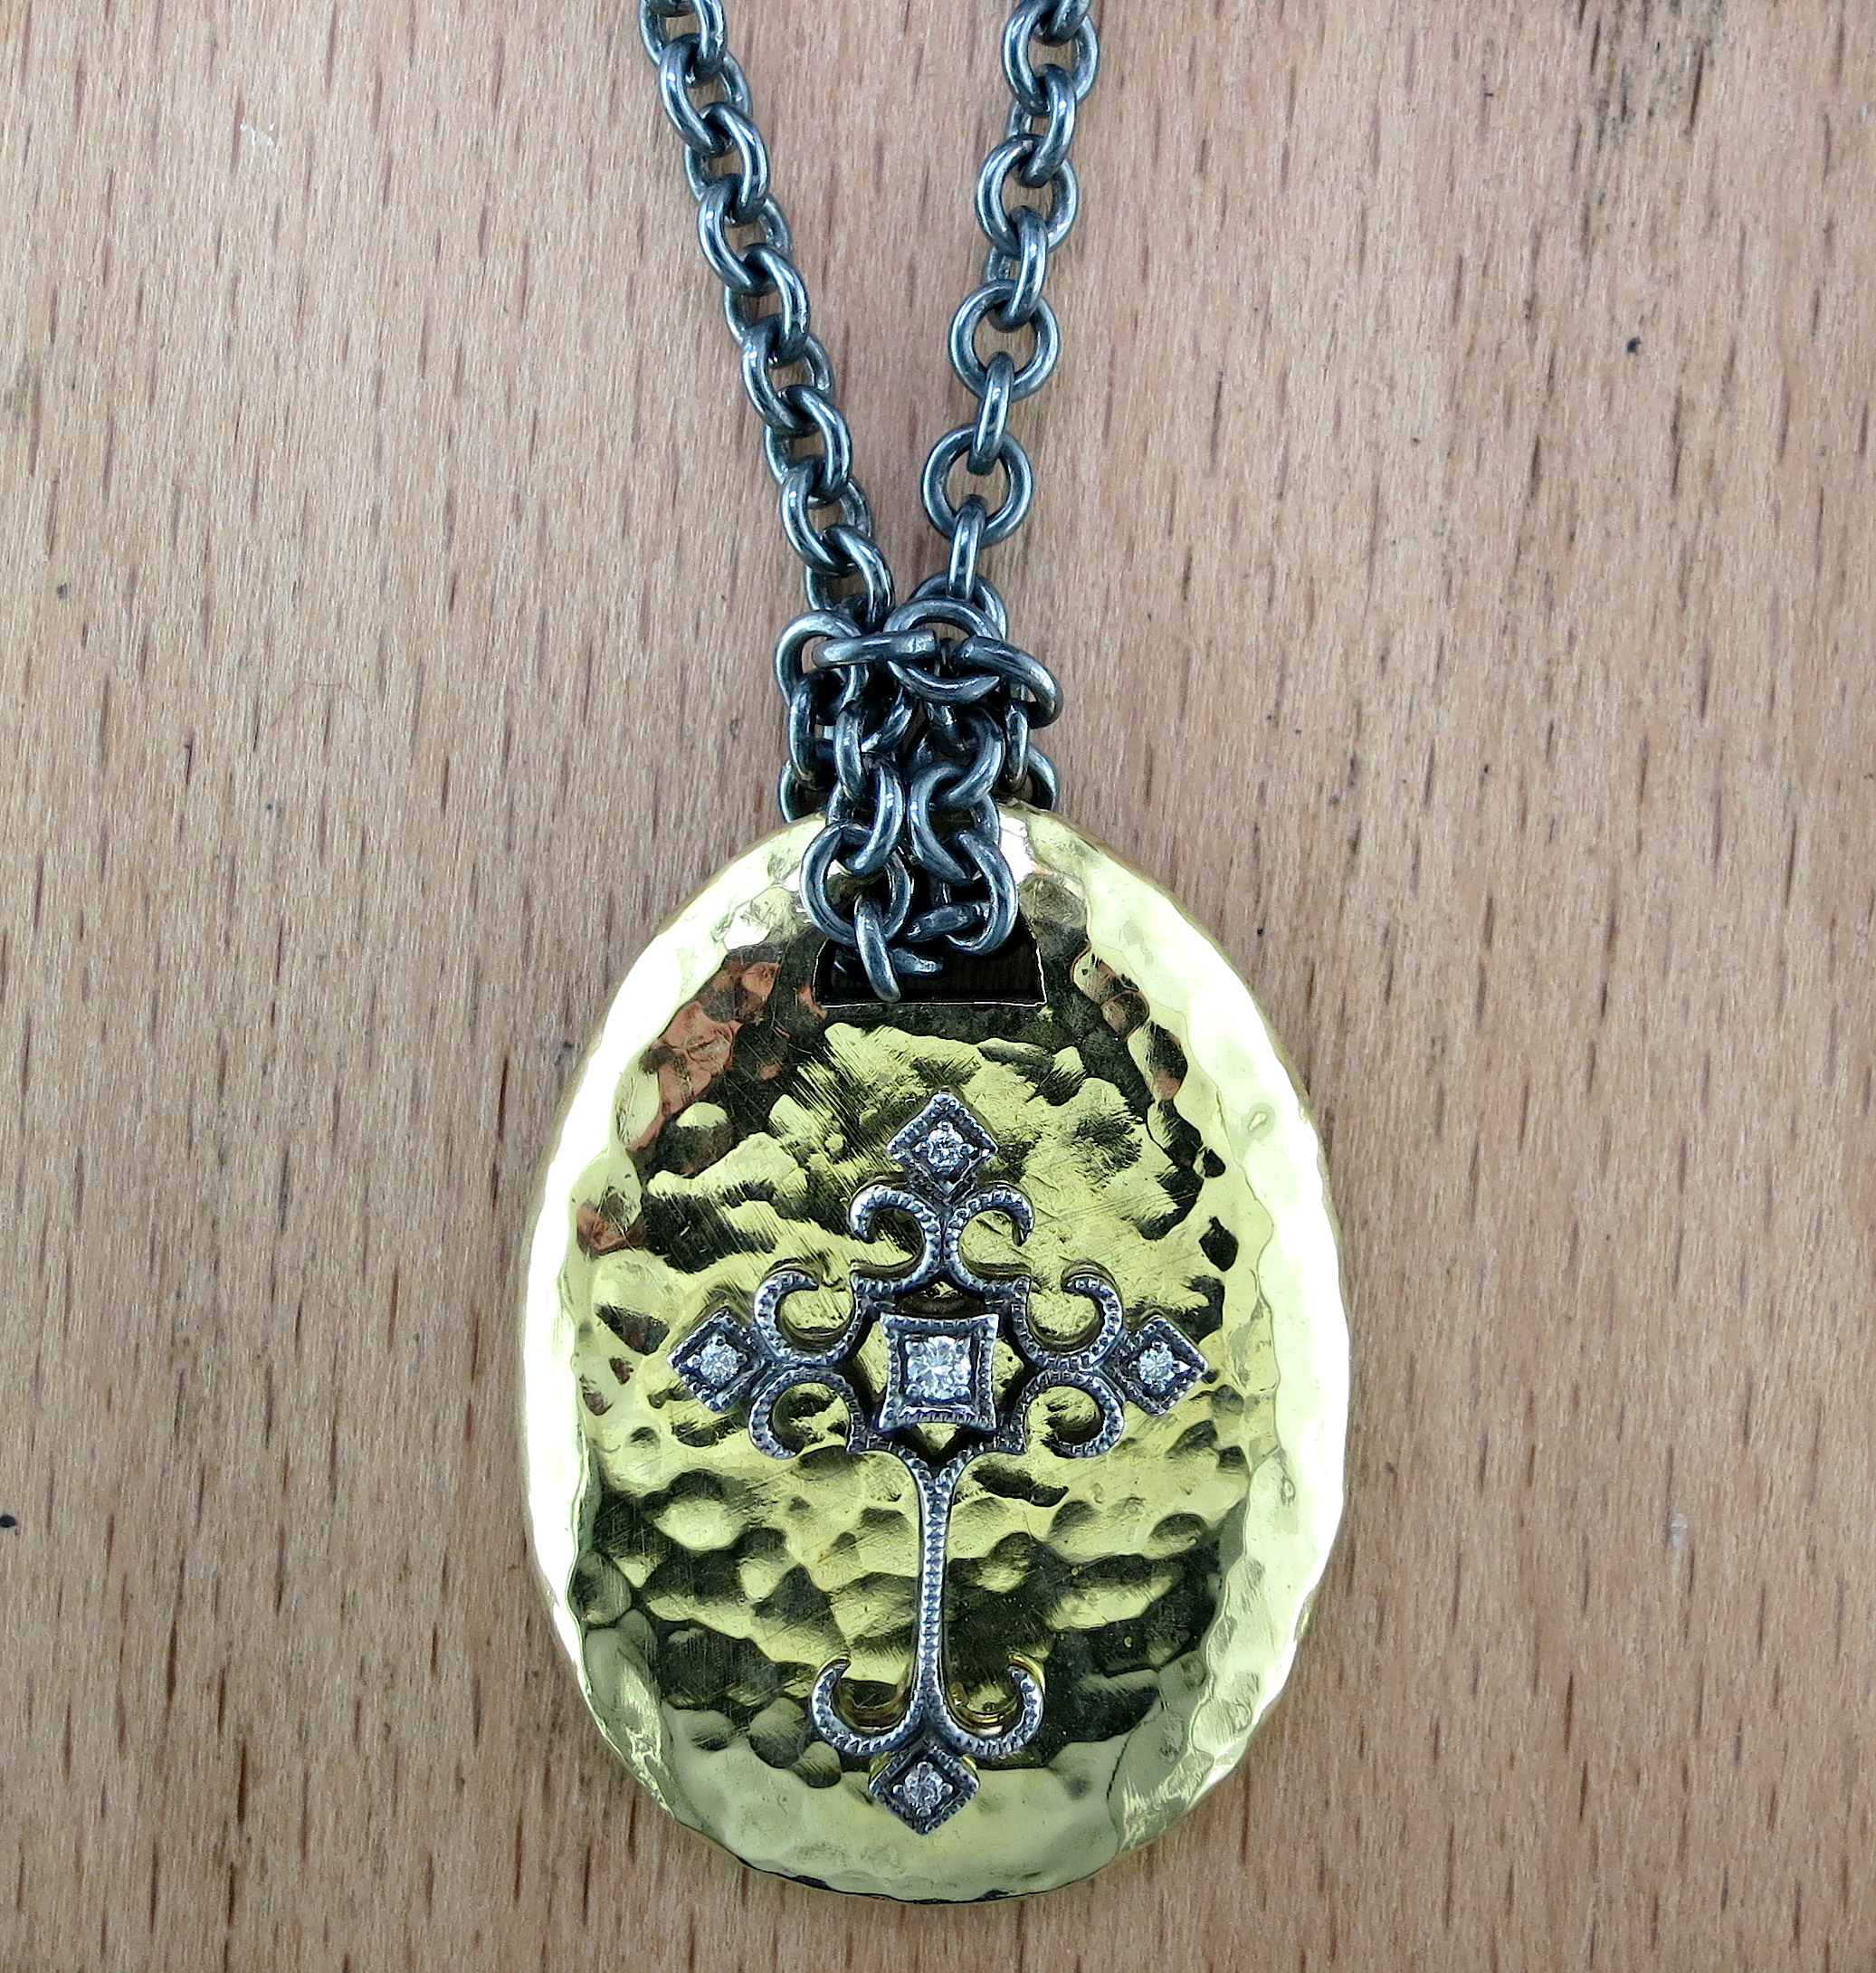 Hand Forged Silver, 18 Karat Yellow Gold and White Diamond Pendant on a Hand Forged Silver Chain (MB2137)